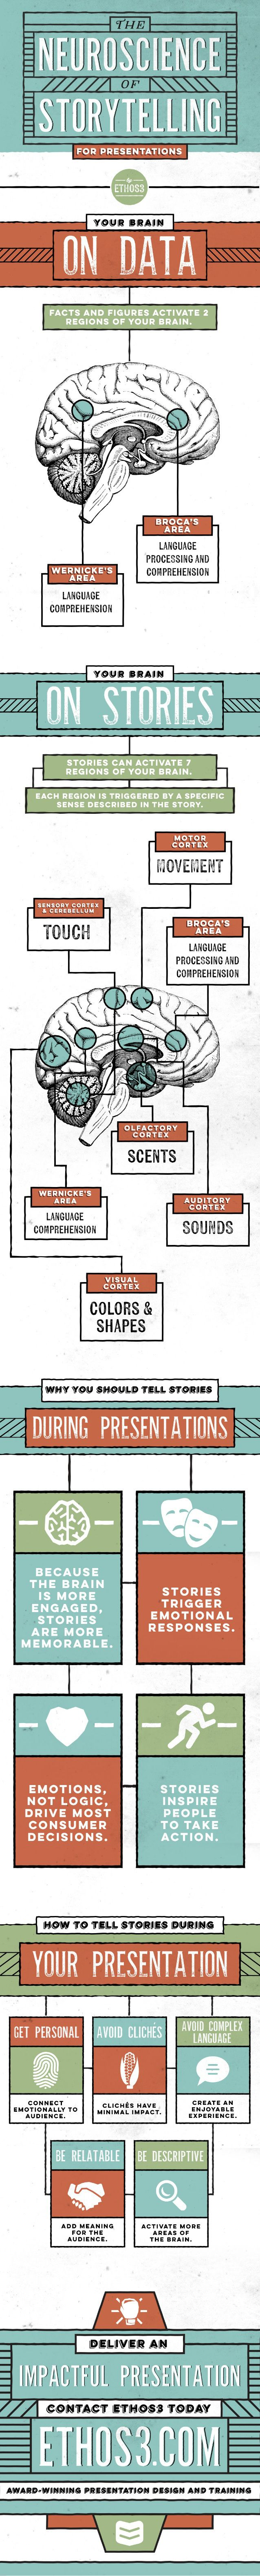 The Neuroscience Of Storytelling - #infographic